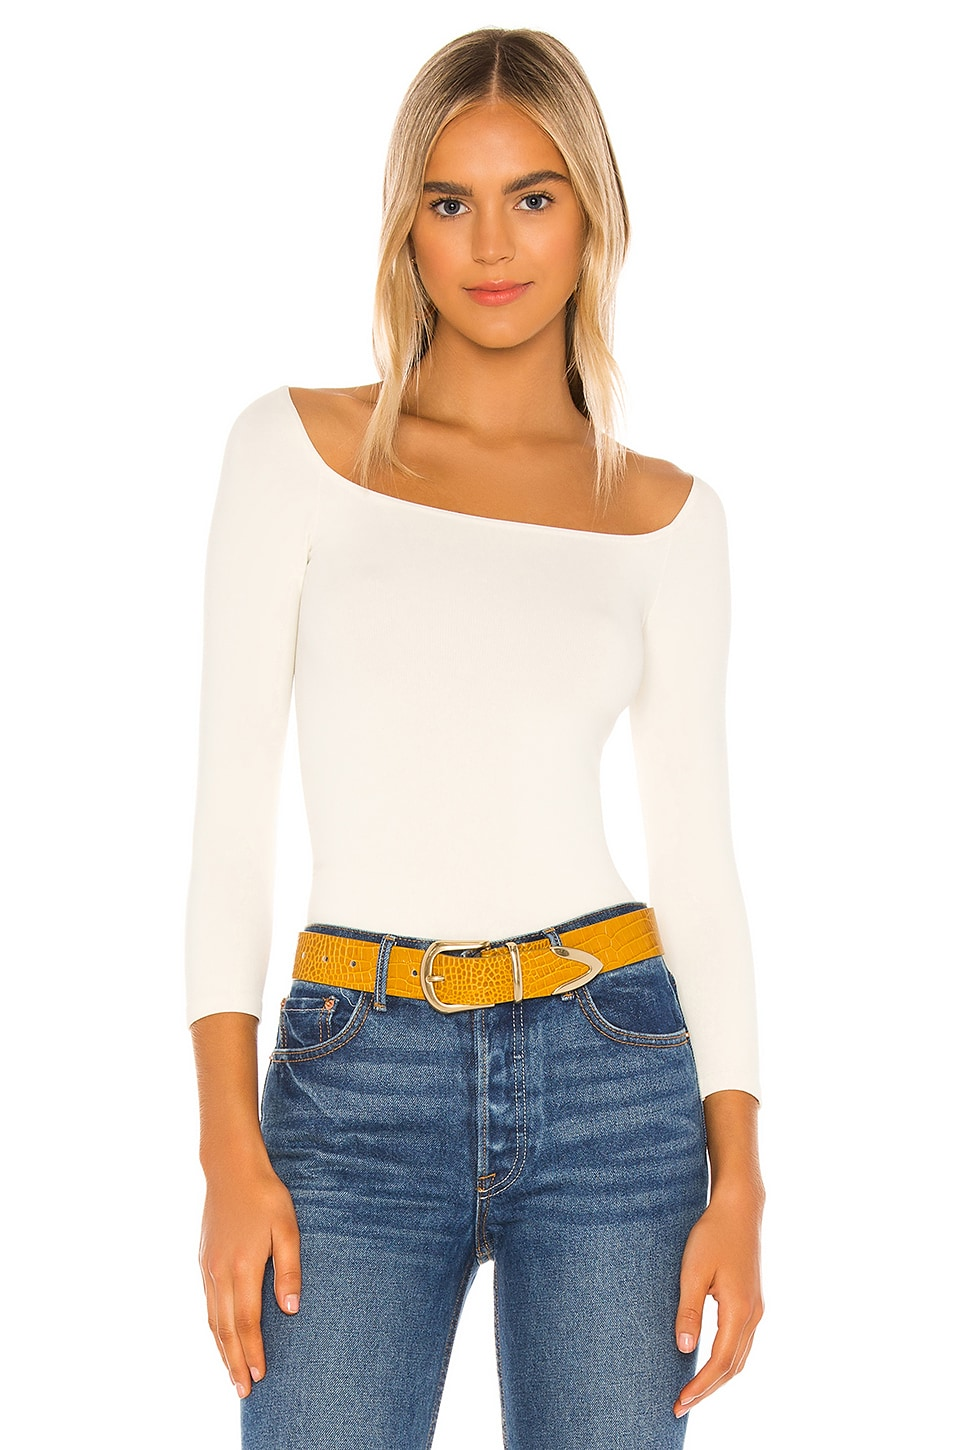 Free People Square Neck Tee in Ivory